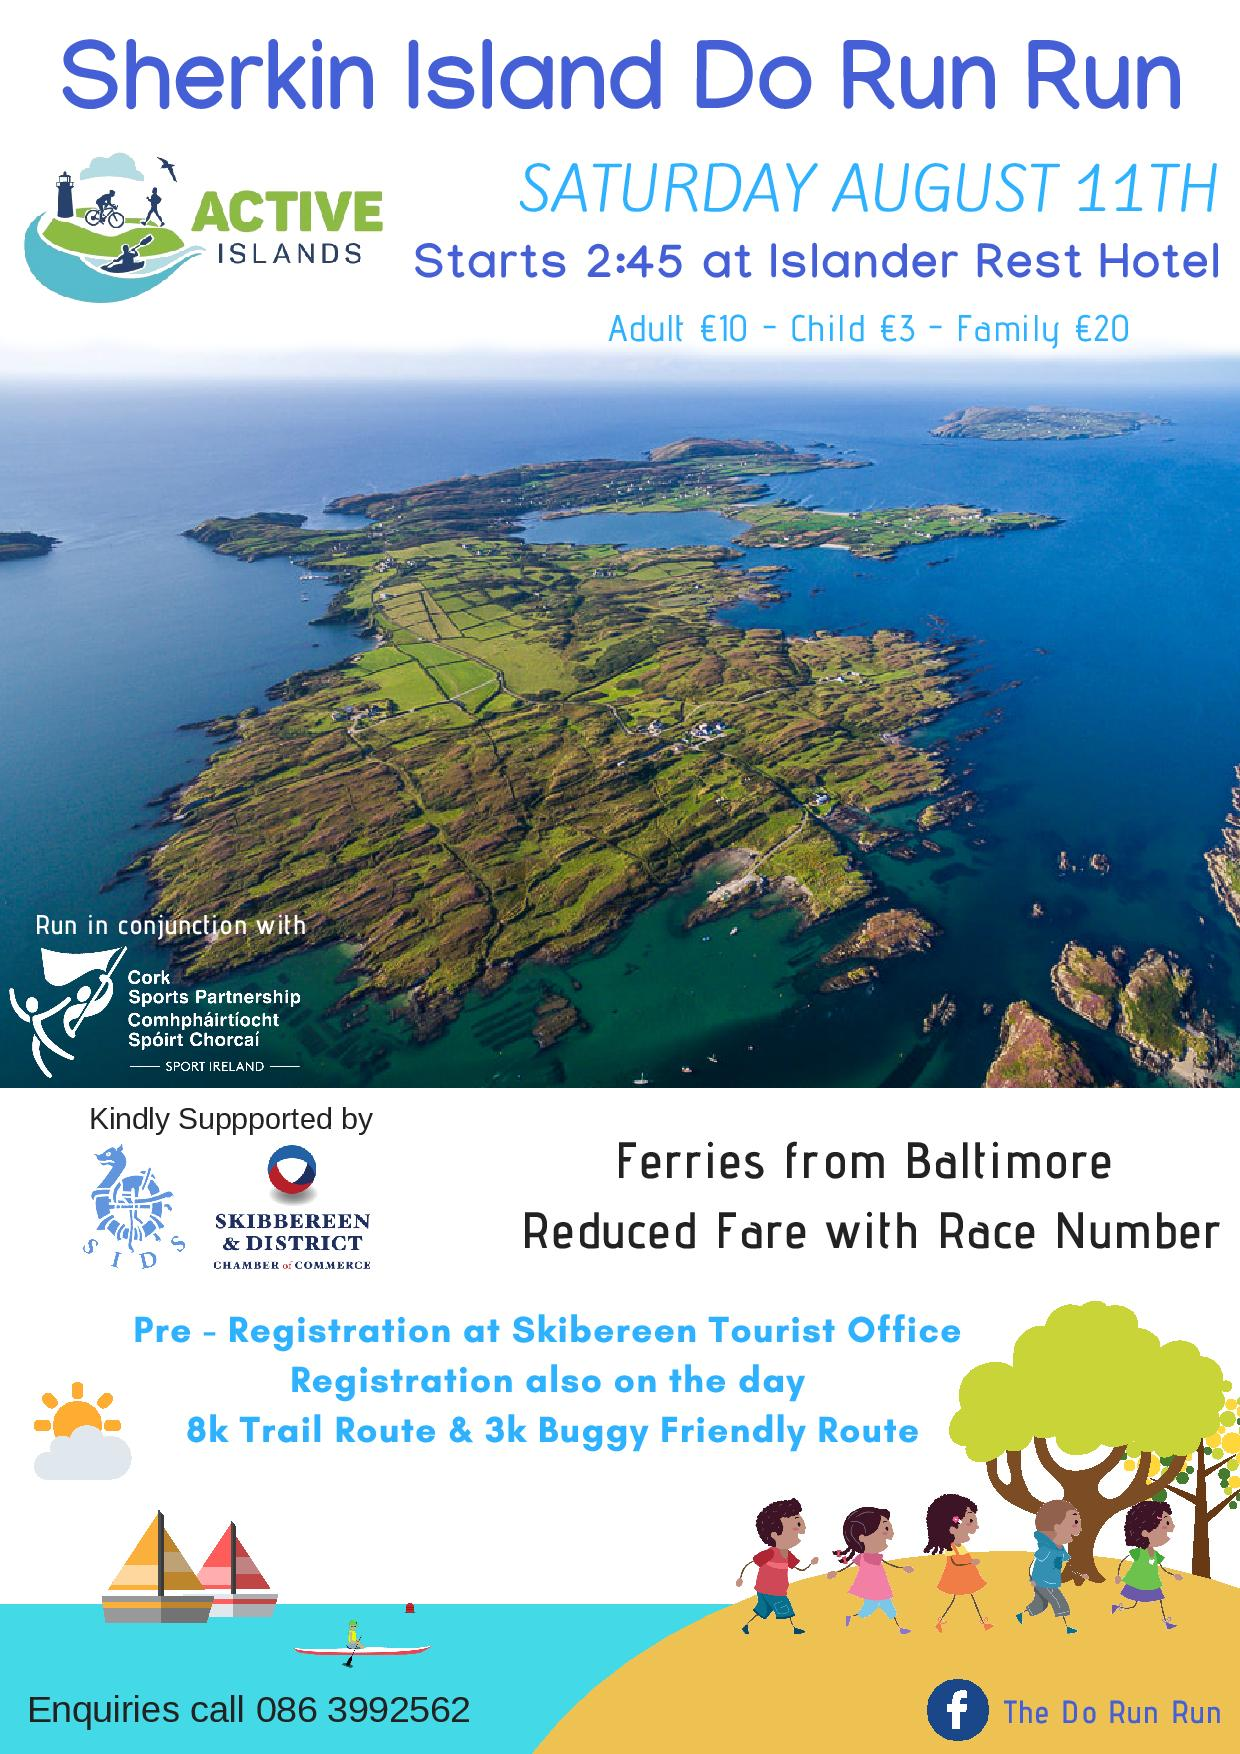 Sherkin Do Run Run – Get Active on Sherkin Island!